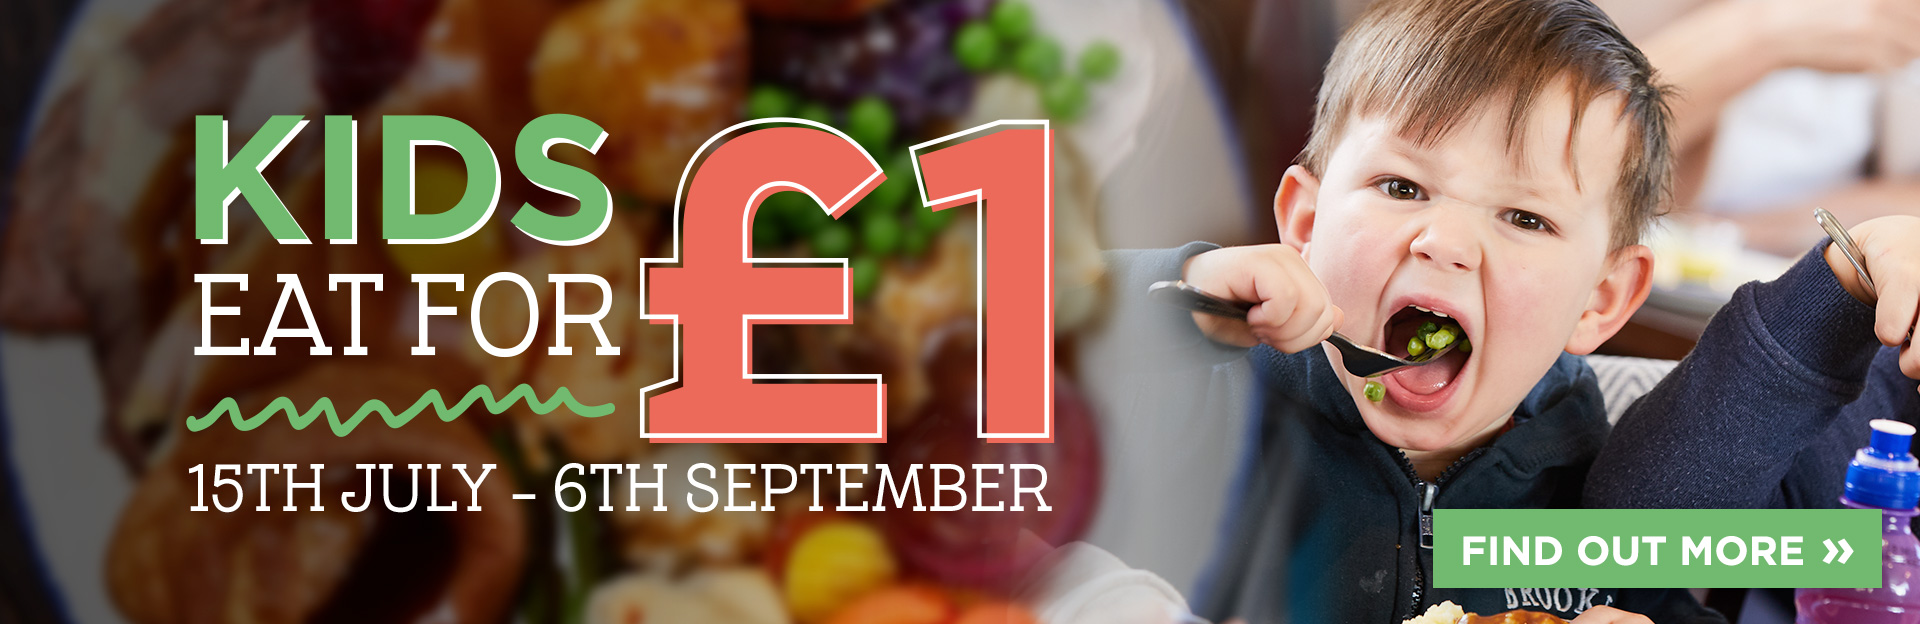 Kids Eat for £1 at The Sandbrook